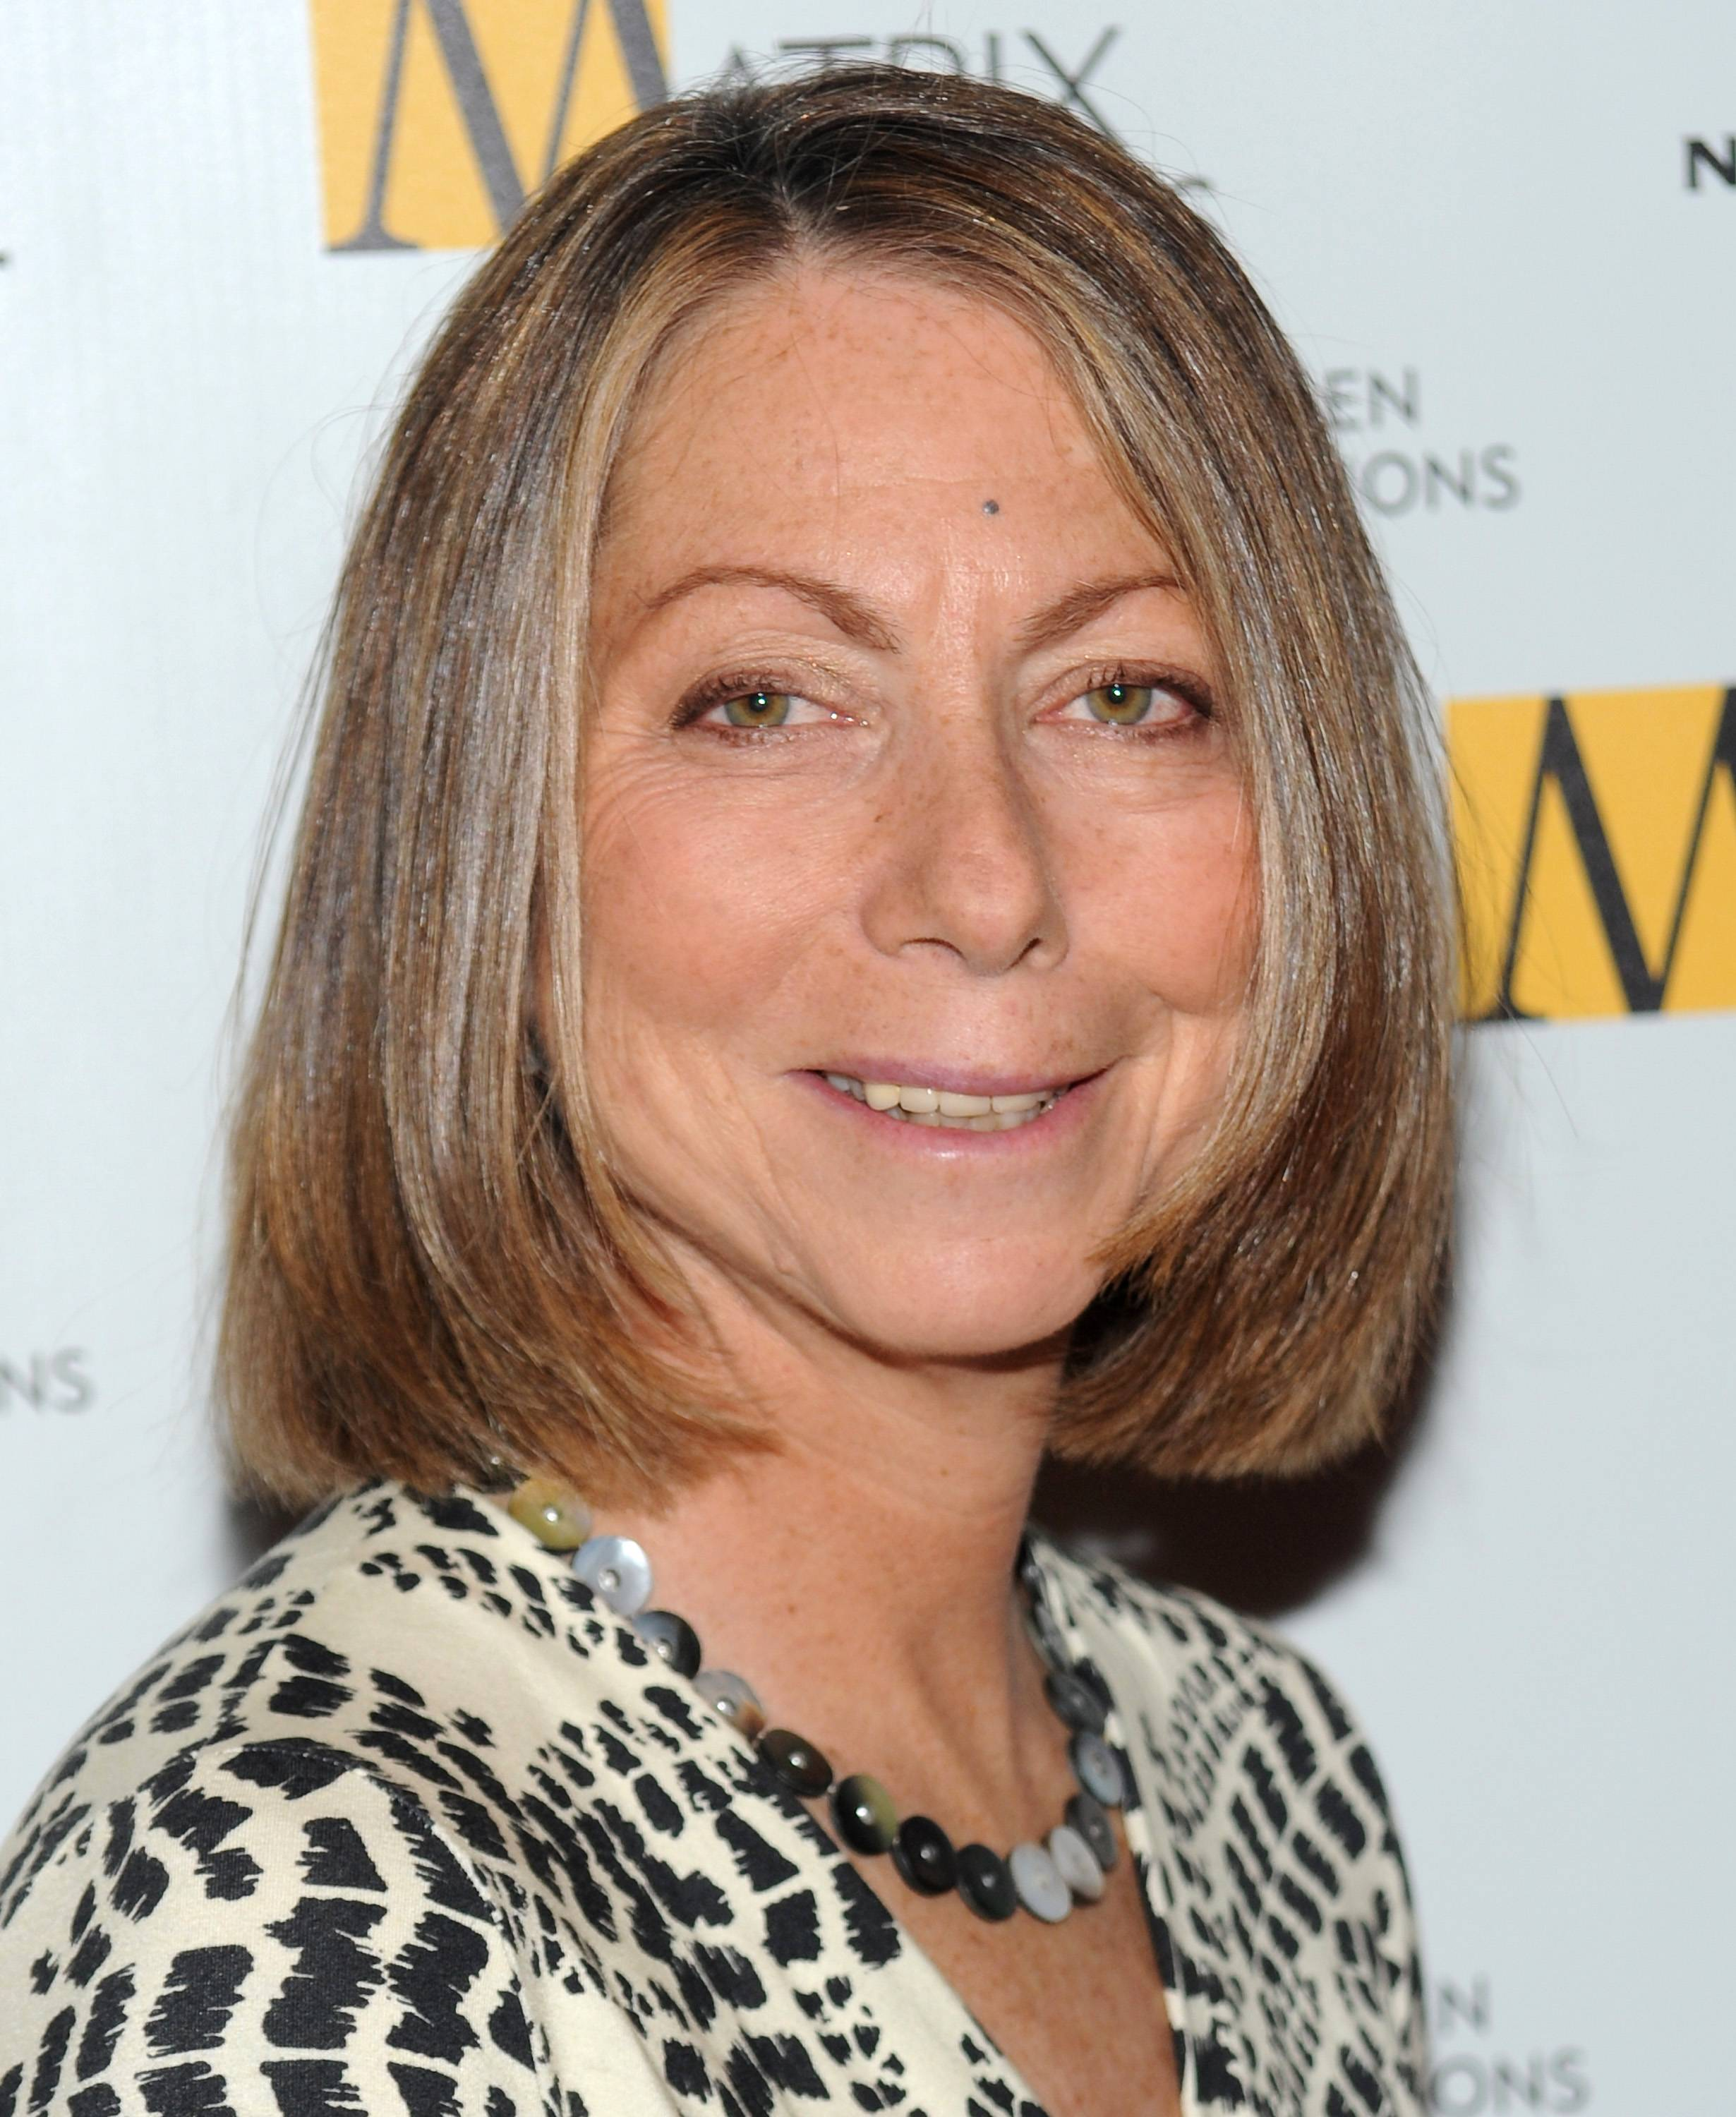 This April 19, 2010 file photo shows then New York Times Managing Editor Jill Abramson at the 2010 Matrix Awards in New York. The New York Times on Wednesday, May 14, 2014 said Abramson is being replaced as Executive Editor by Managing Editor Dan Baquet after two and a half years on the job.